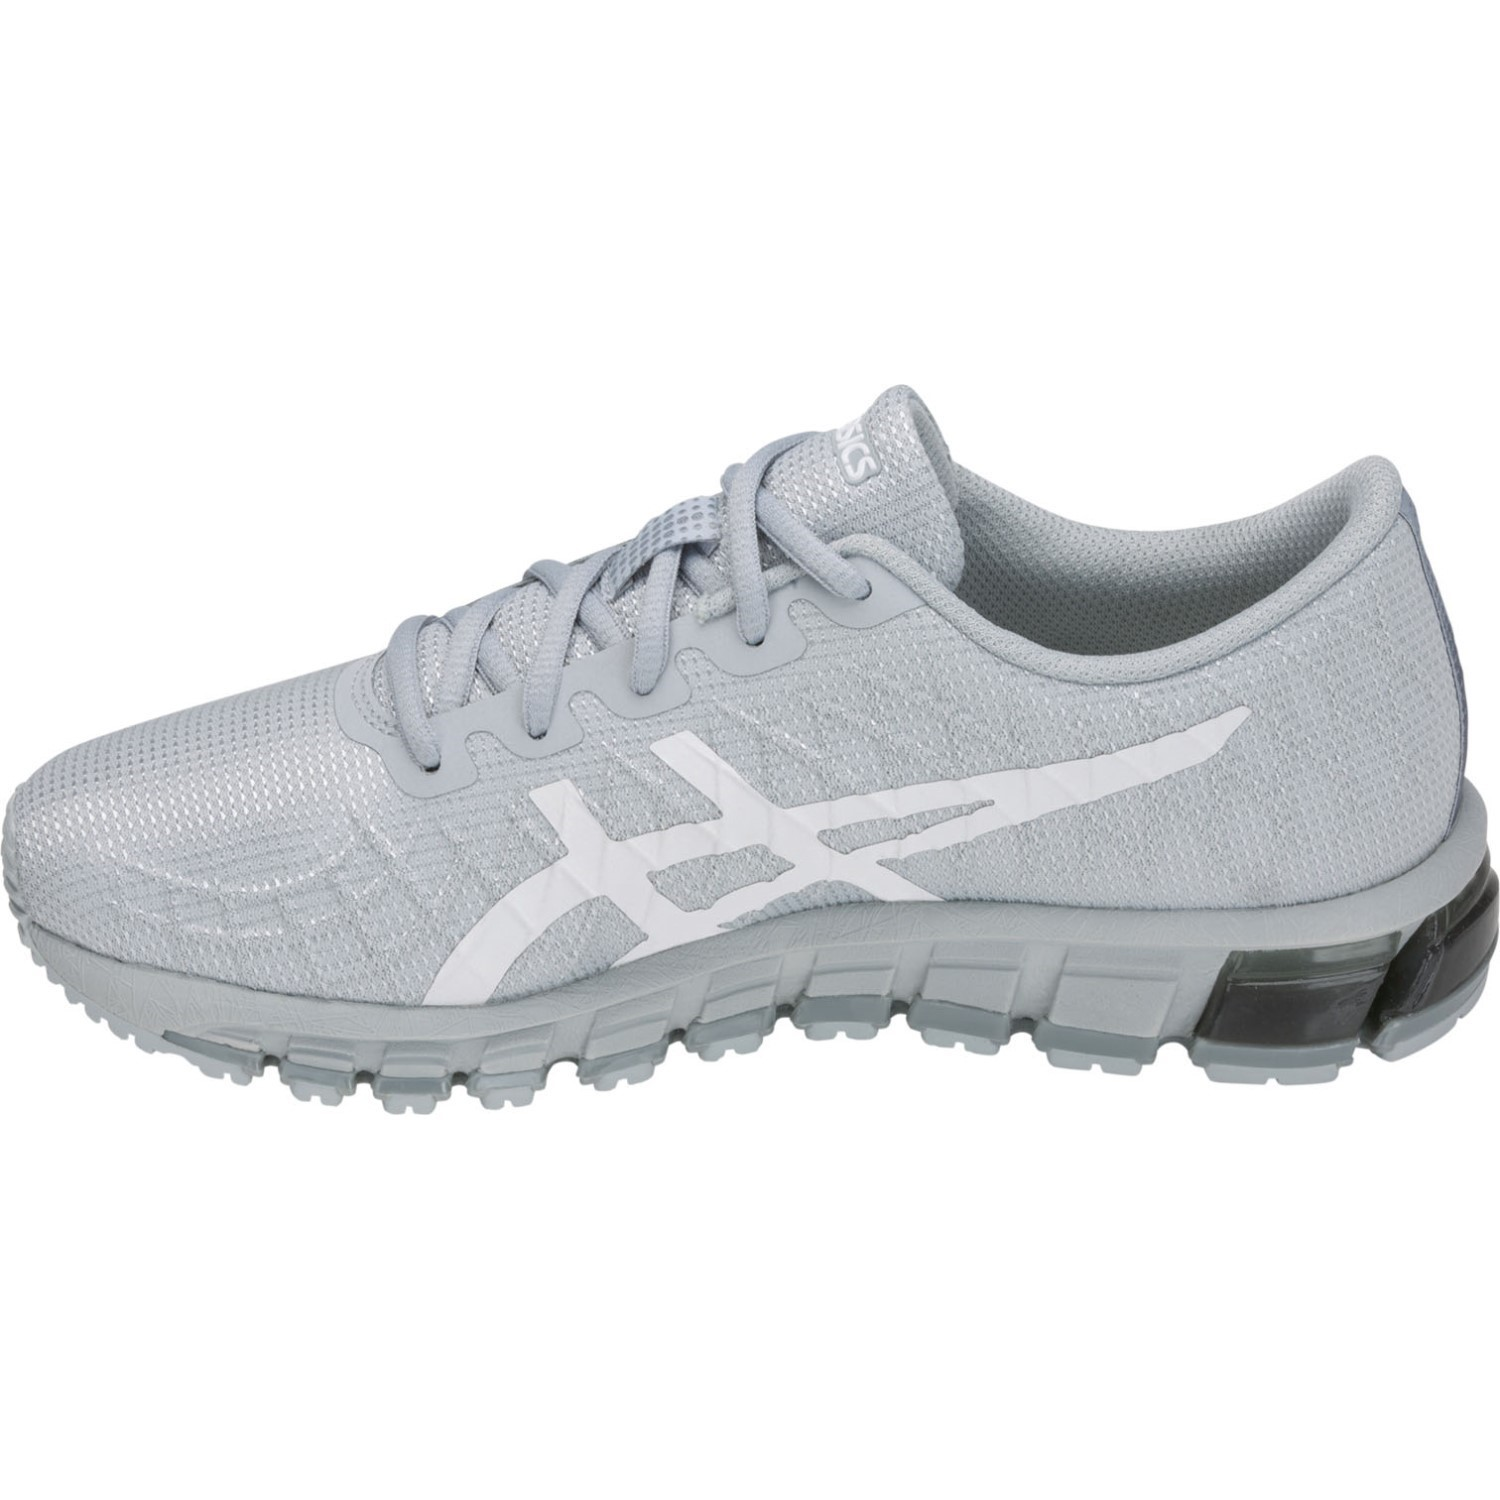 buy online 38676 8d330 Asics Gel Quantum 180 4 - Womens Training Shoes - Mid Grey White